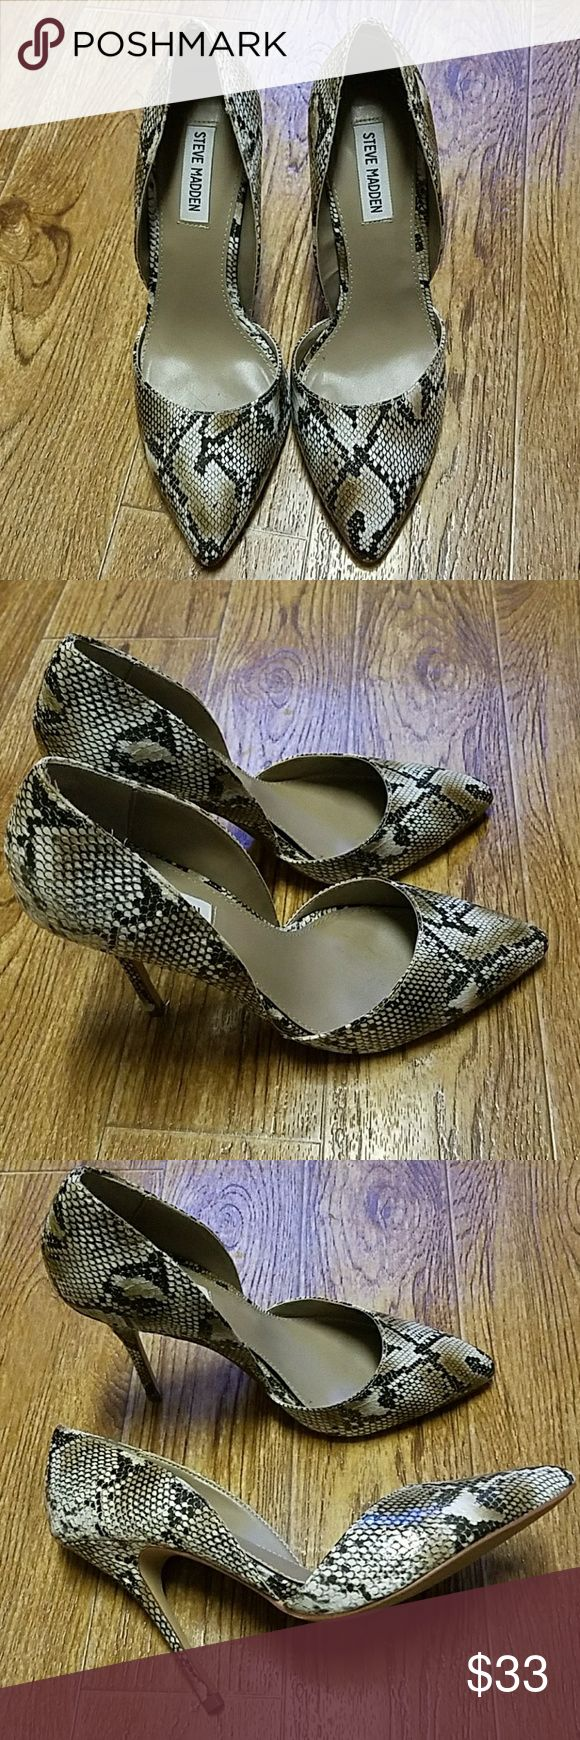 "Steve Madden snakeprint pumps size 8 1/2M These super cute Steve Madden ""Giddy D'Orsay"" pumps are size 8 1/2. Color: snakeprint.  Worn once, still in  great condition. Only sigm of wear is on the bottom, see pic#4. Approx 4"" heels.  Last pic is a stock photo. Steve Madden Shoes Heels"